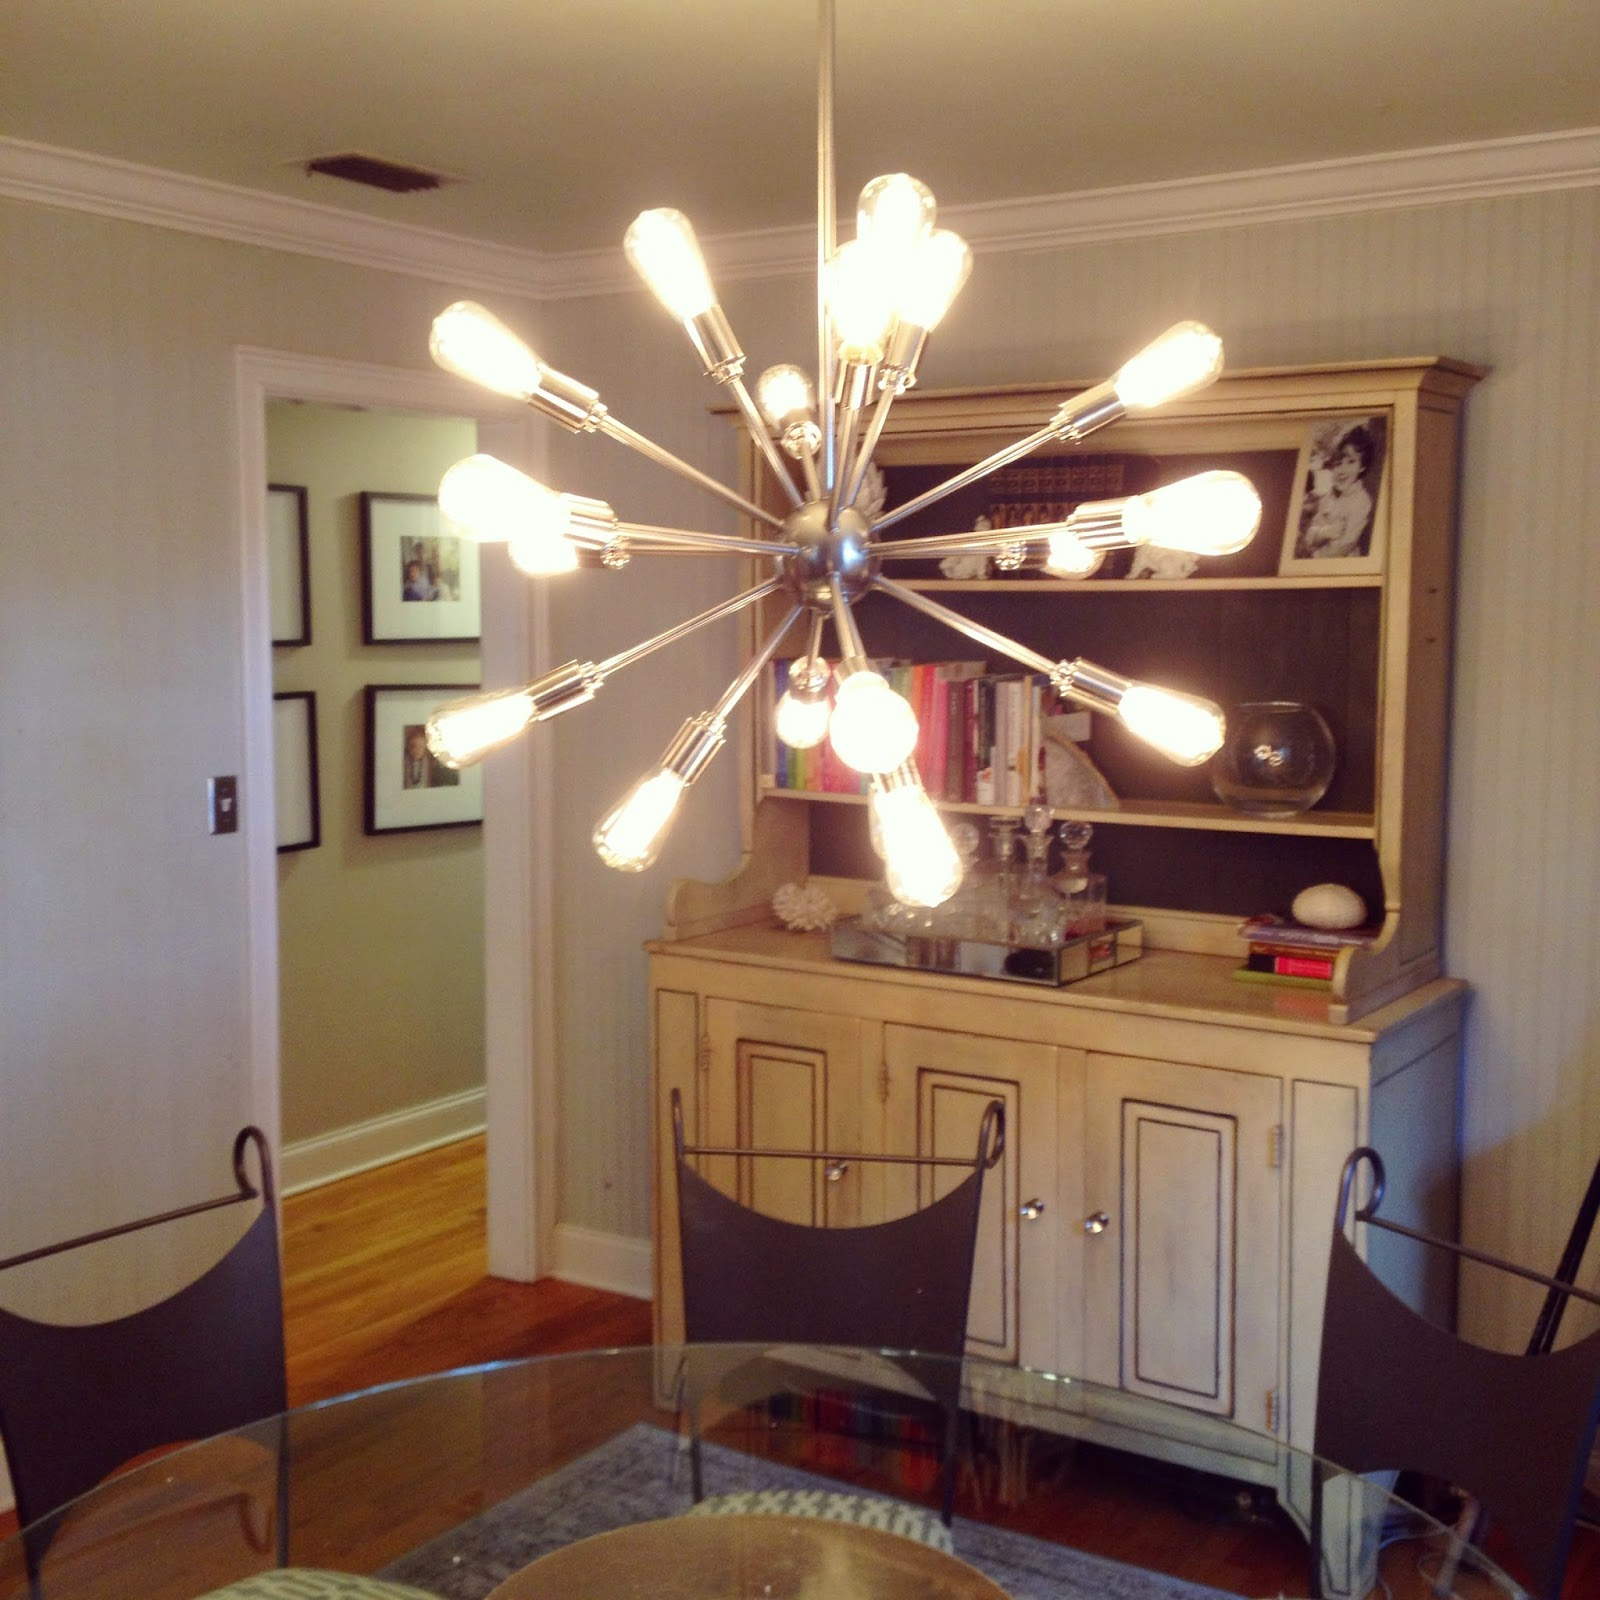 Allen and roth lighting modern lamp to shine vintage appeal amazing blossom white alen and roth chandelier upon dining table with classic chairs aside rustic wooden arubaitofo Choice Image